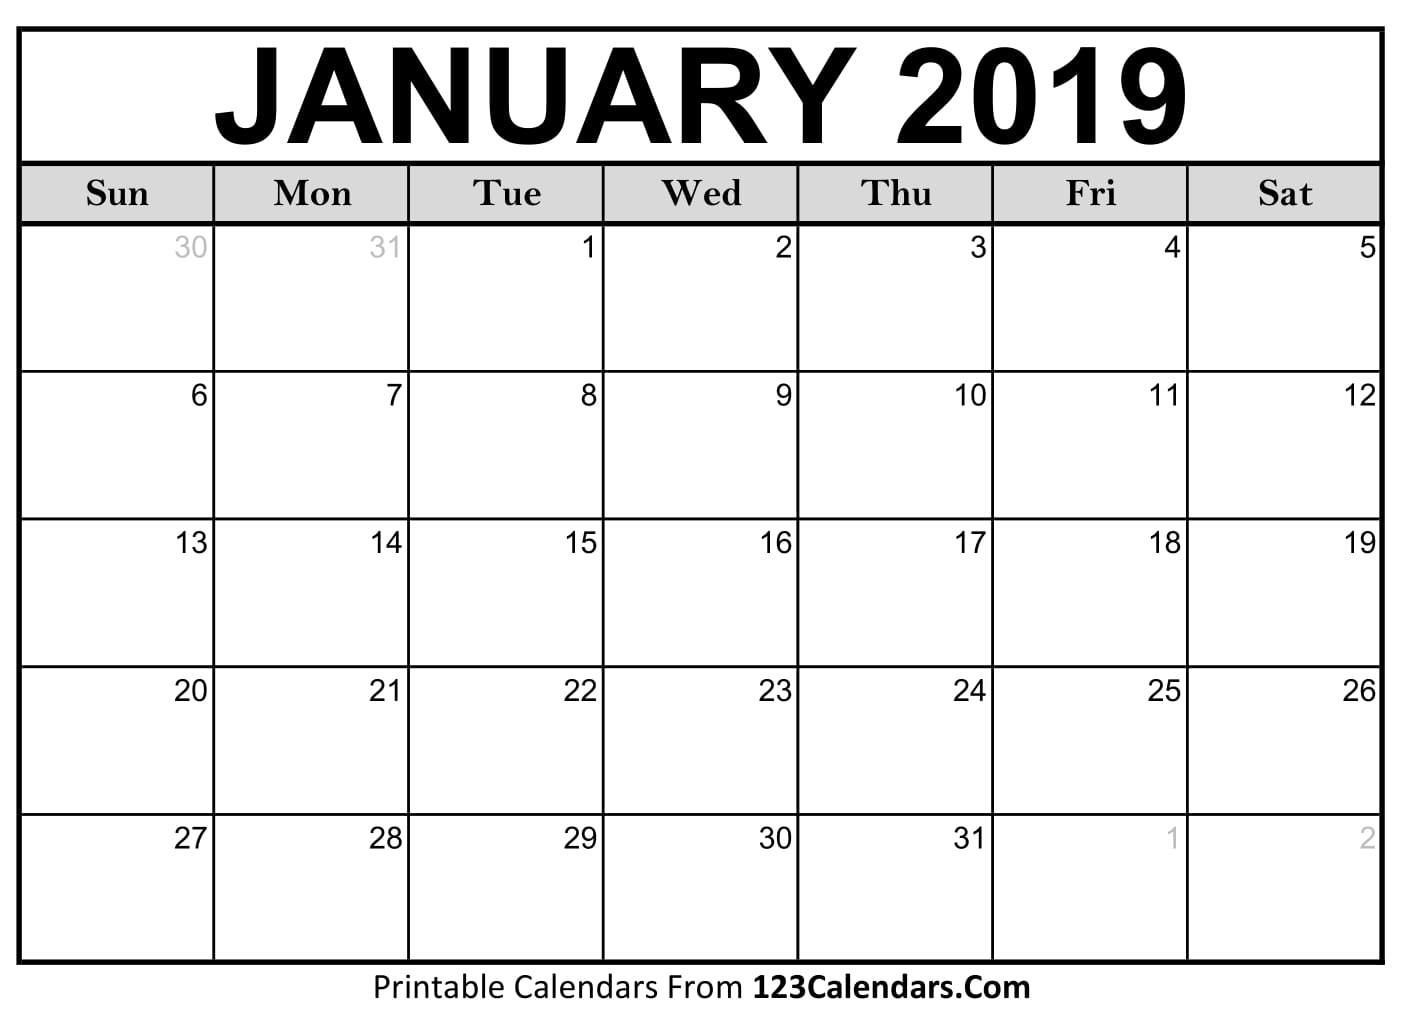 Free Printable Calendar | 123Calendars-January 2020 Calendar Nz